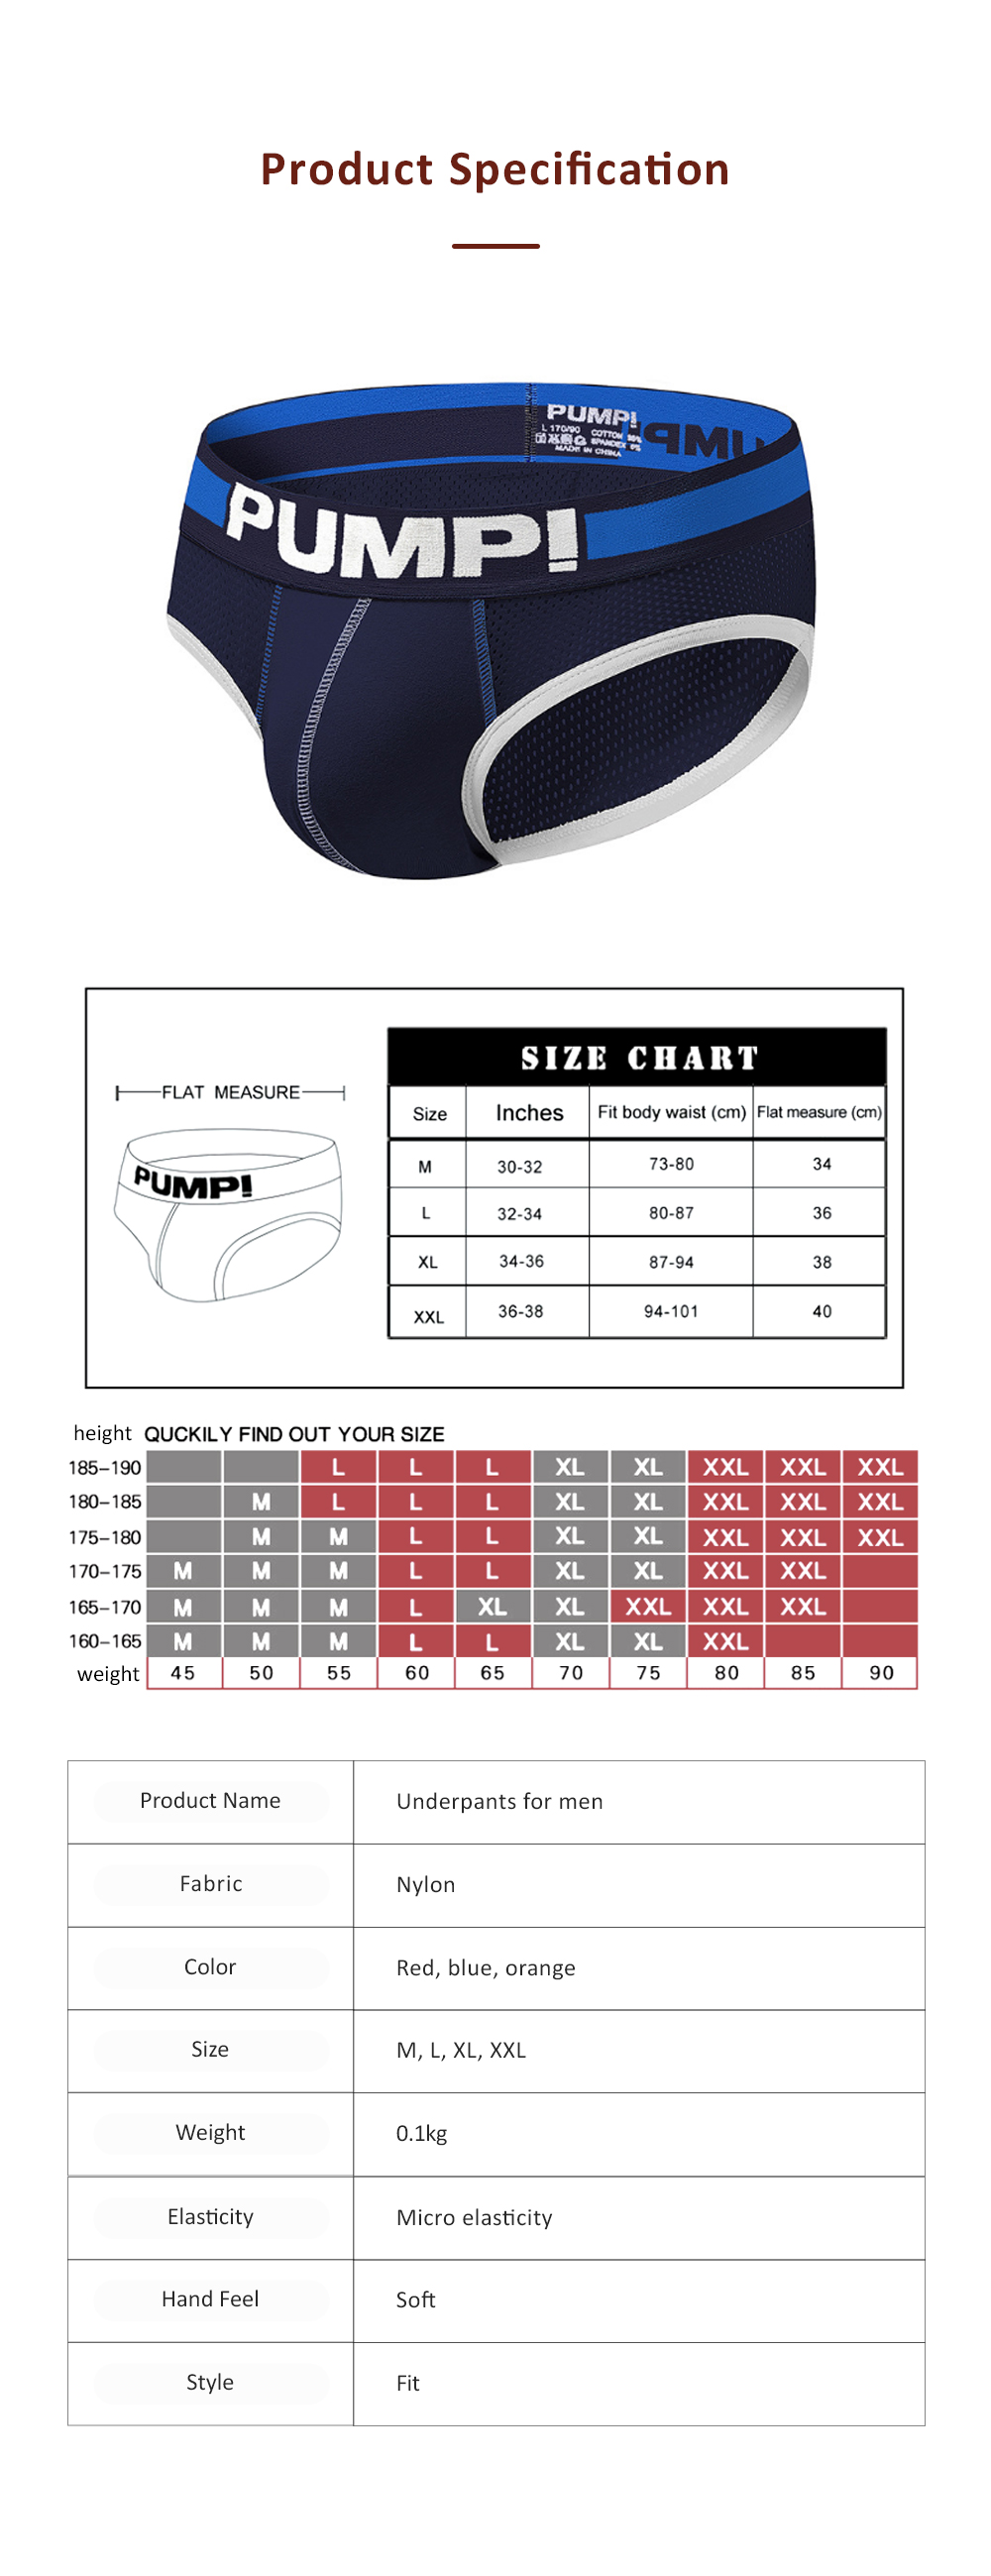 Mesh Breathable Underpants for Man's Daily Wear Sexy Briefs 100% Cotton Material Breathable briefs Underwear for Men 6